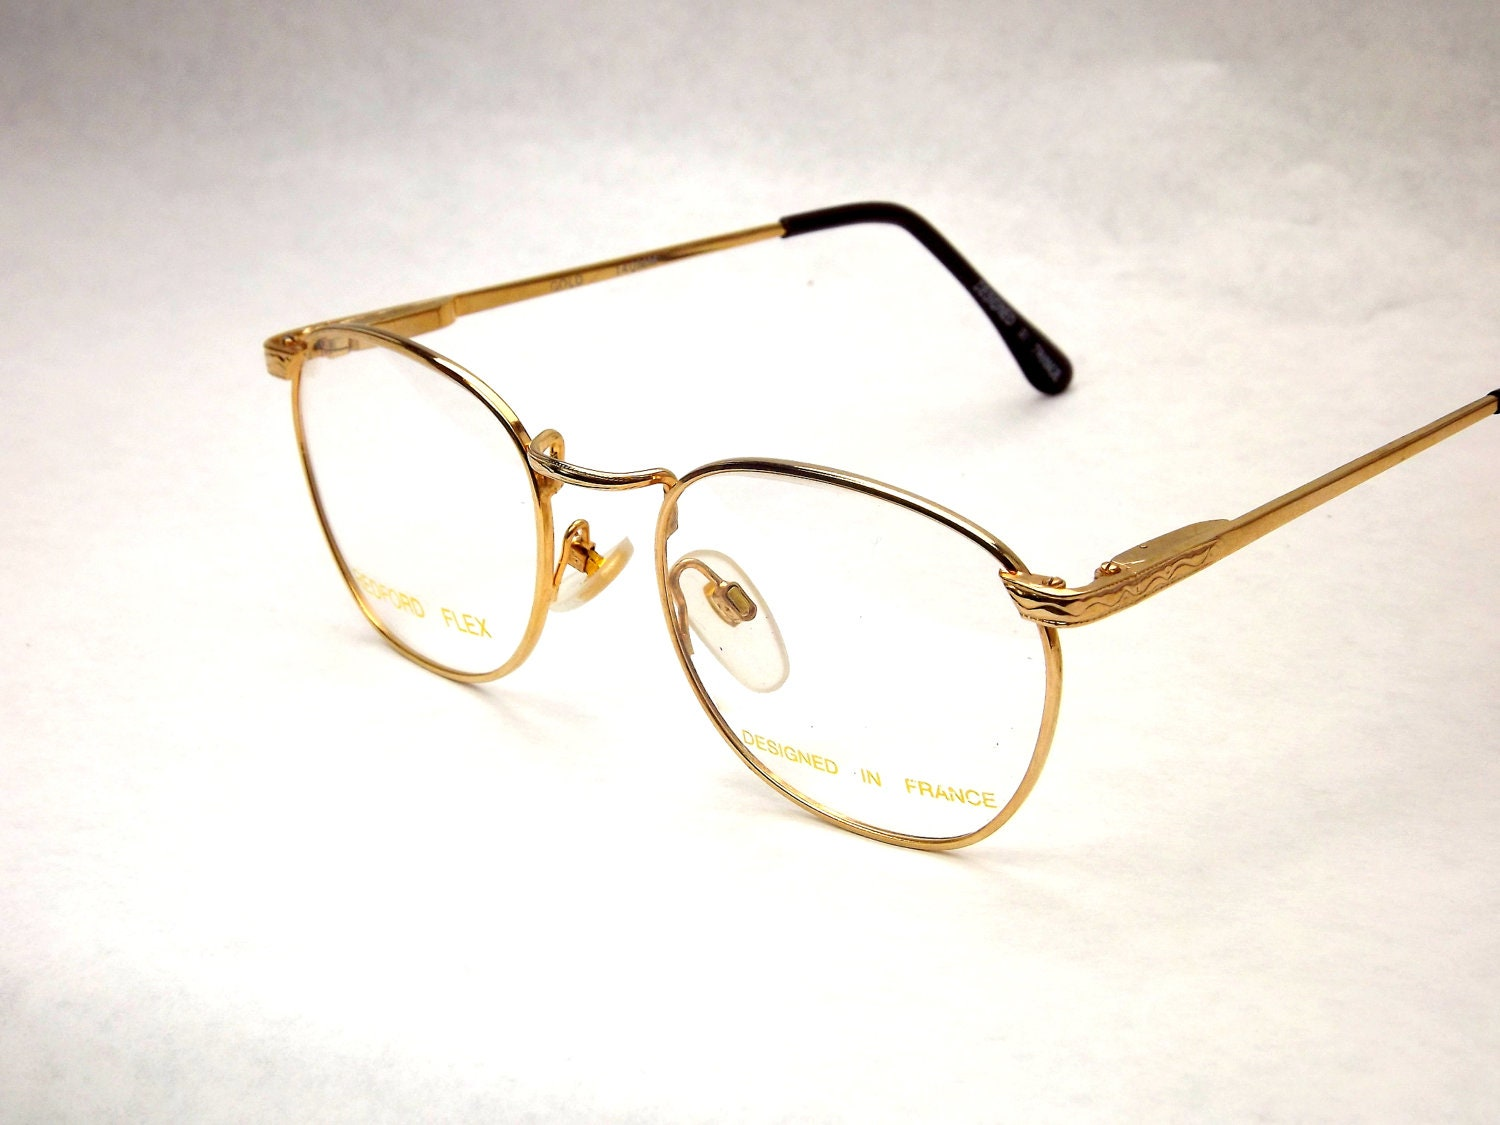 Gold Wire Eyeglass Frames : Vintage Gold Round Squared Wire Eyeglasses 80s by DontUWantMe